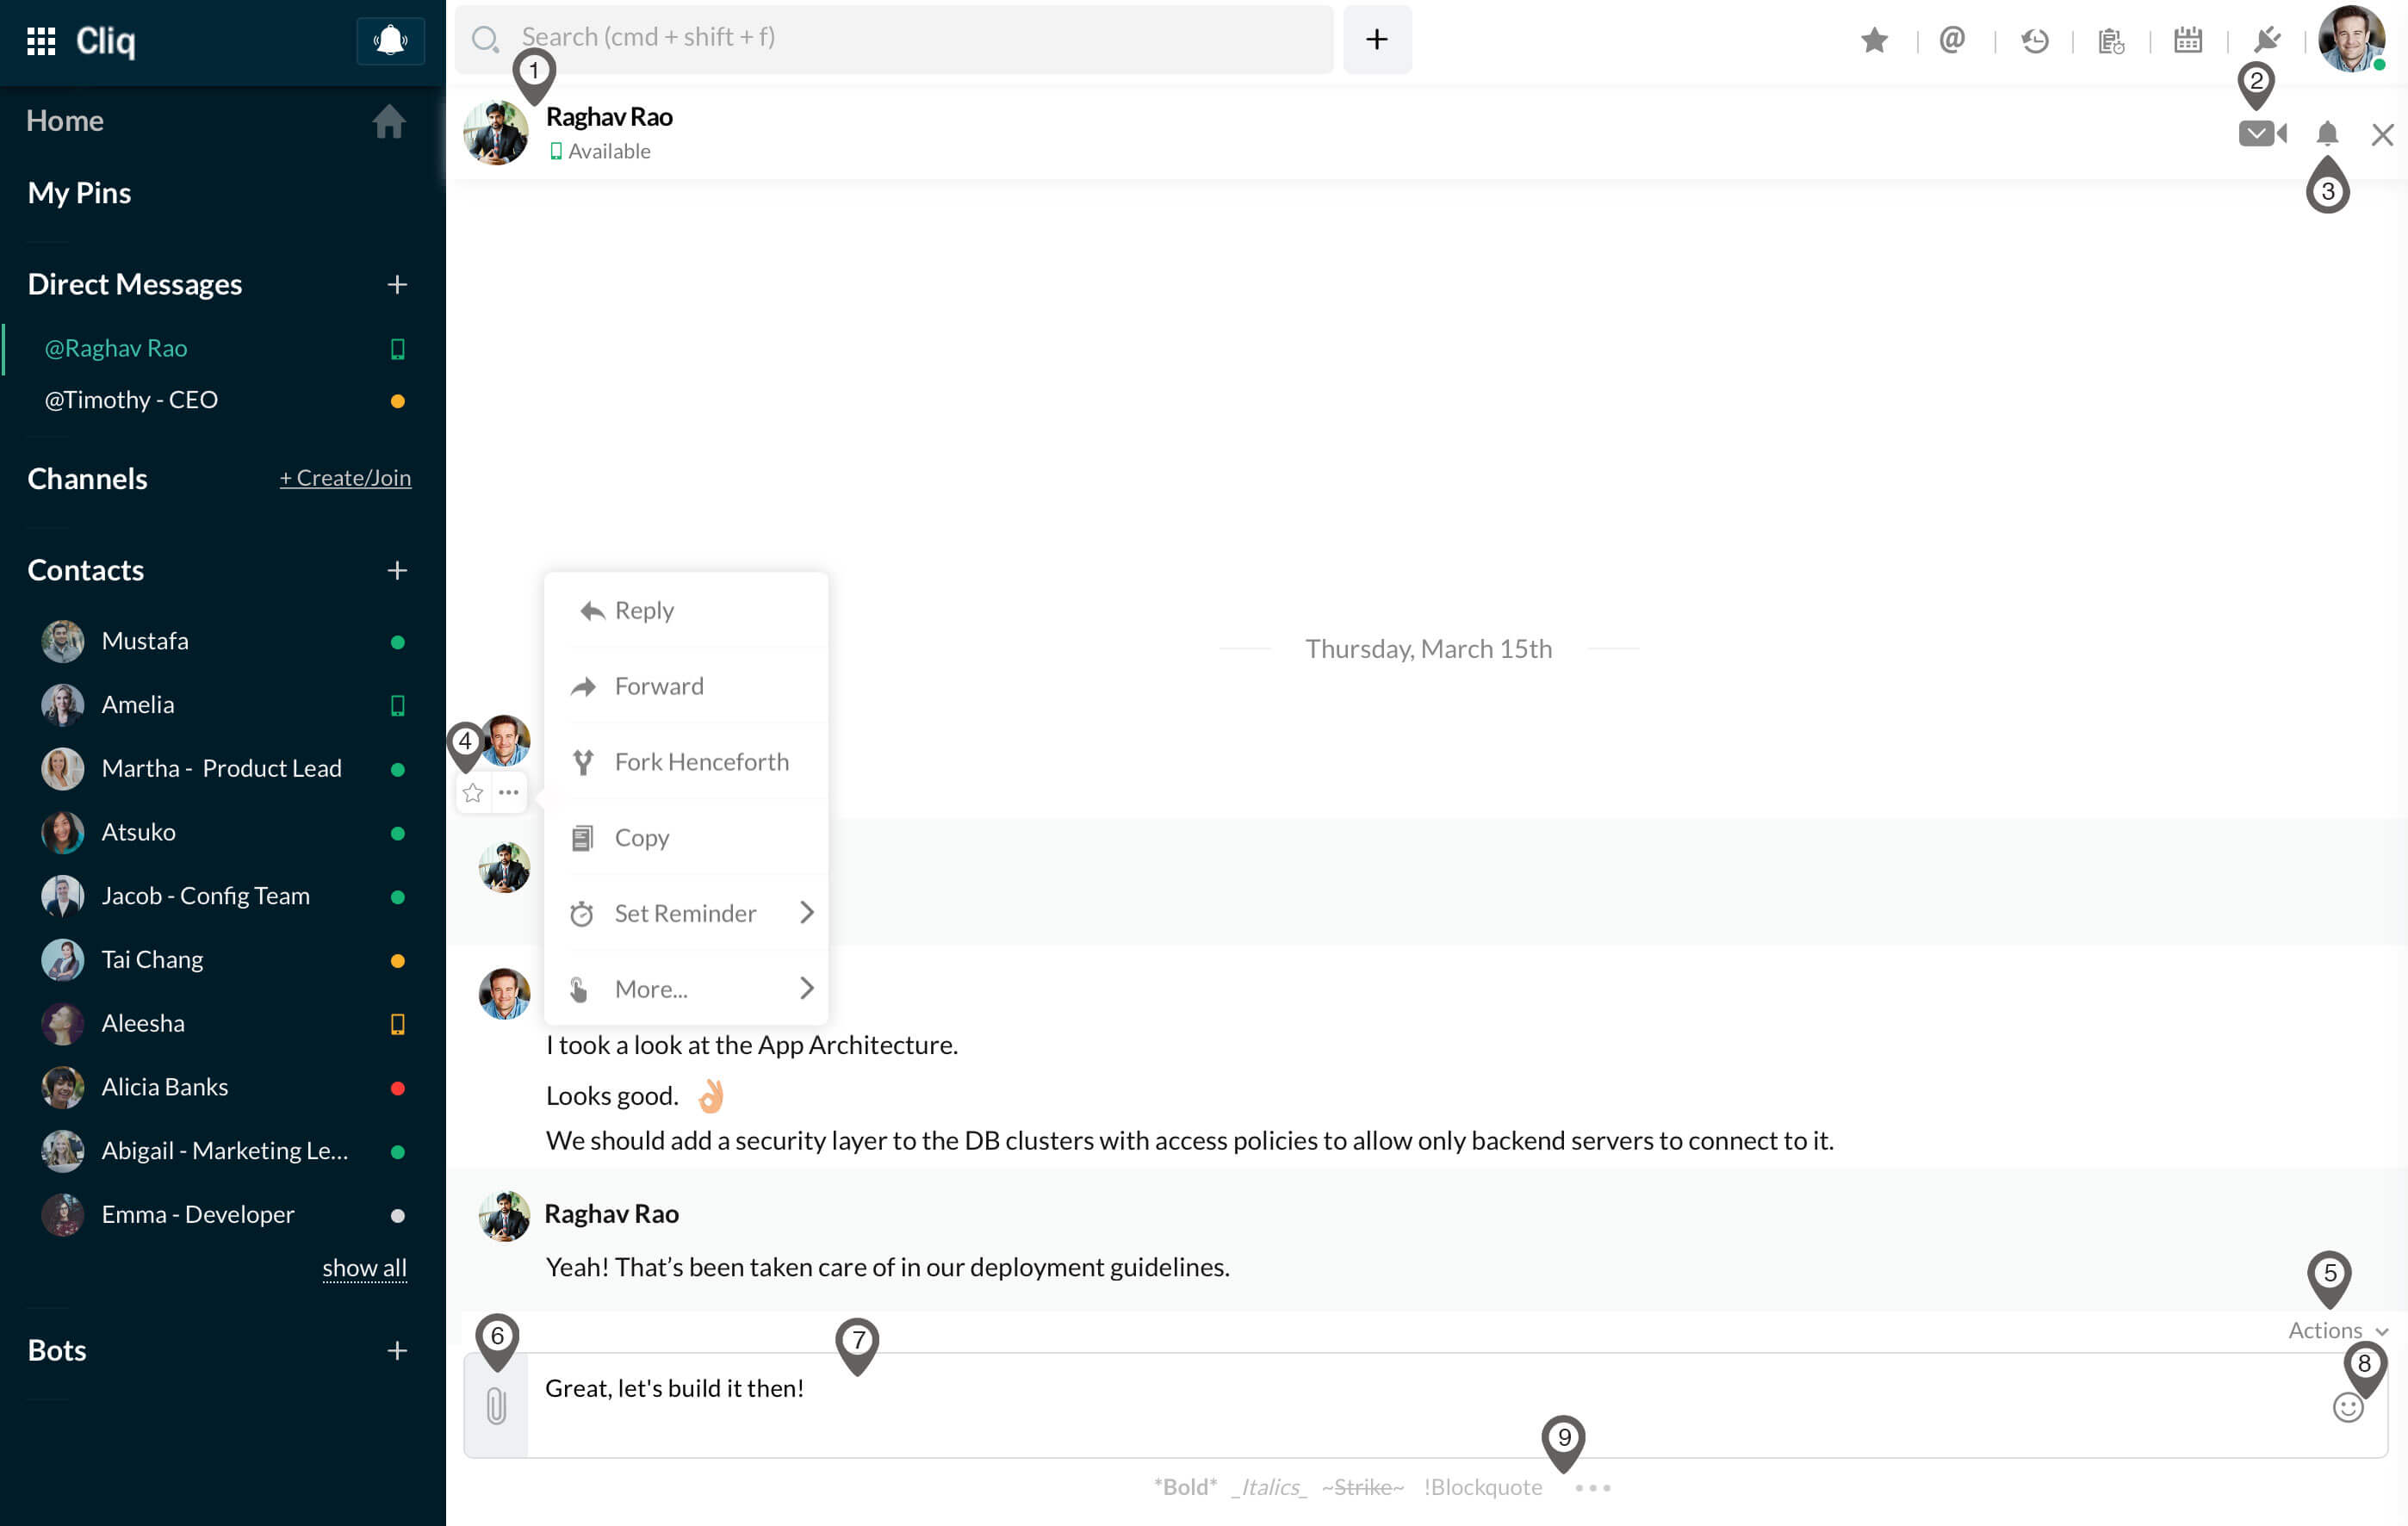 The Chat window in detail with all its features